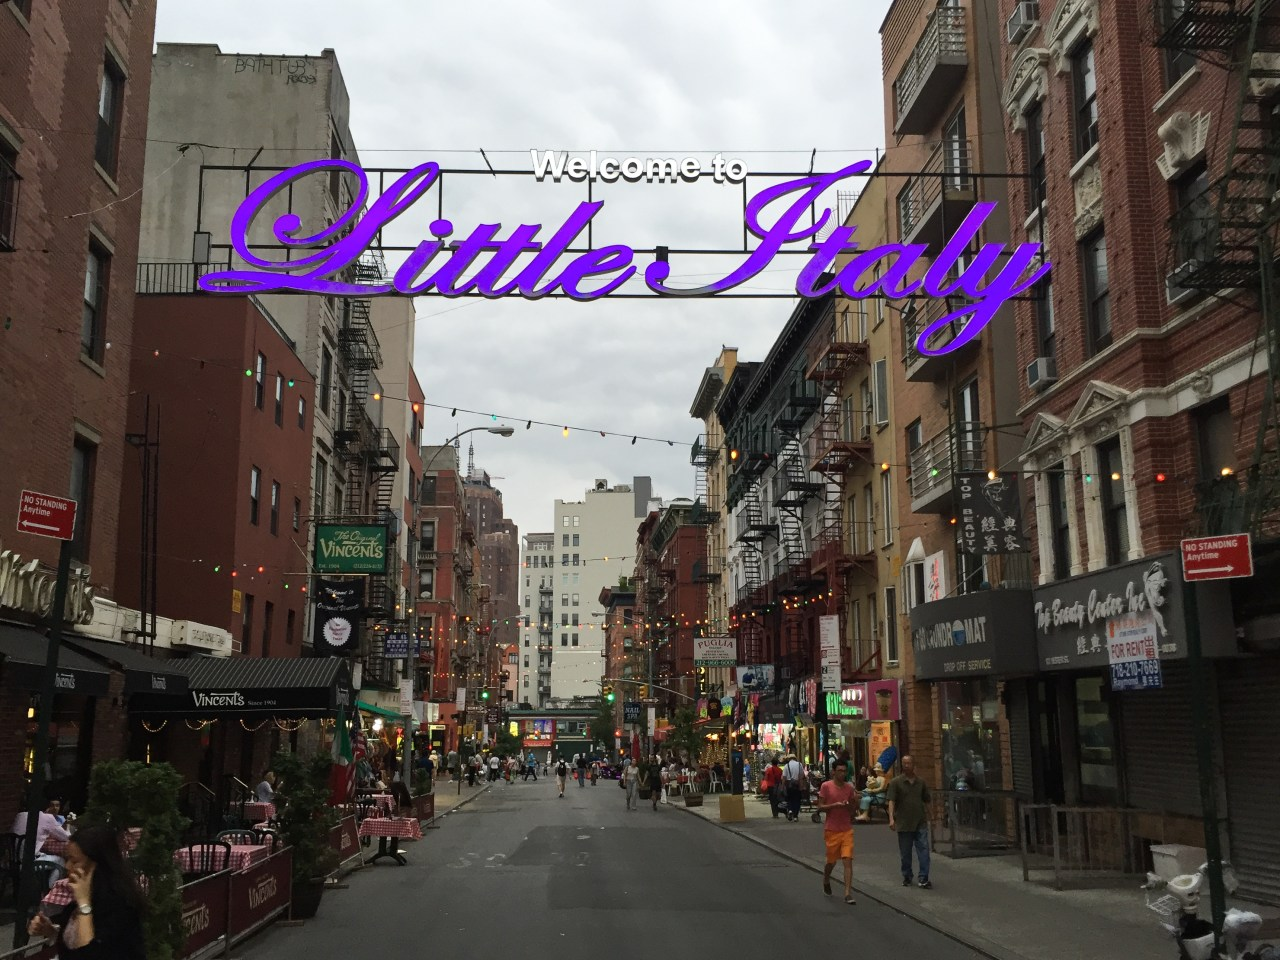 And to think I saw it on Mulberry Street - Little Italy, NYC